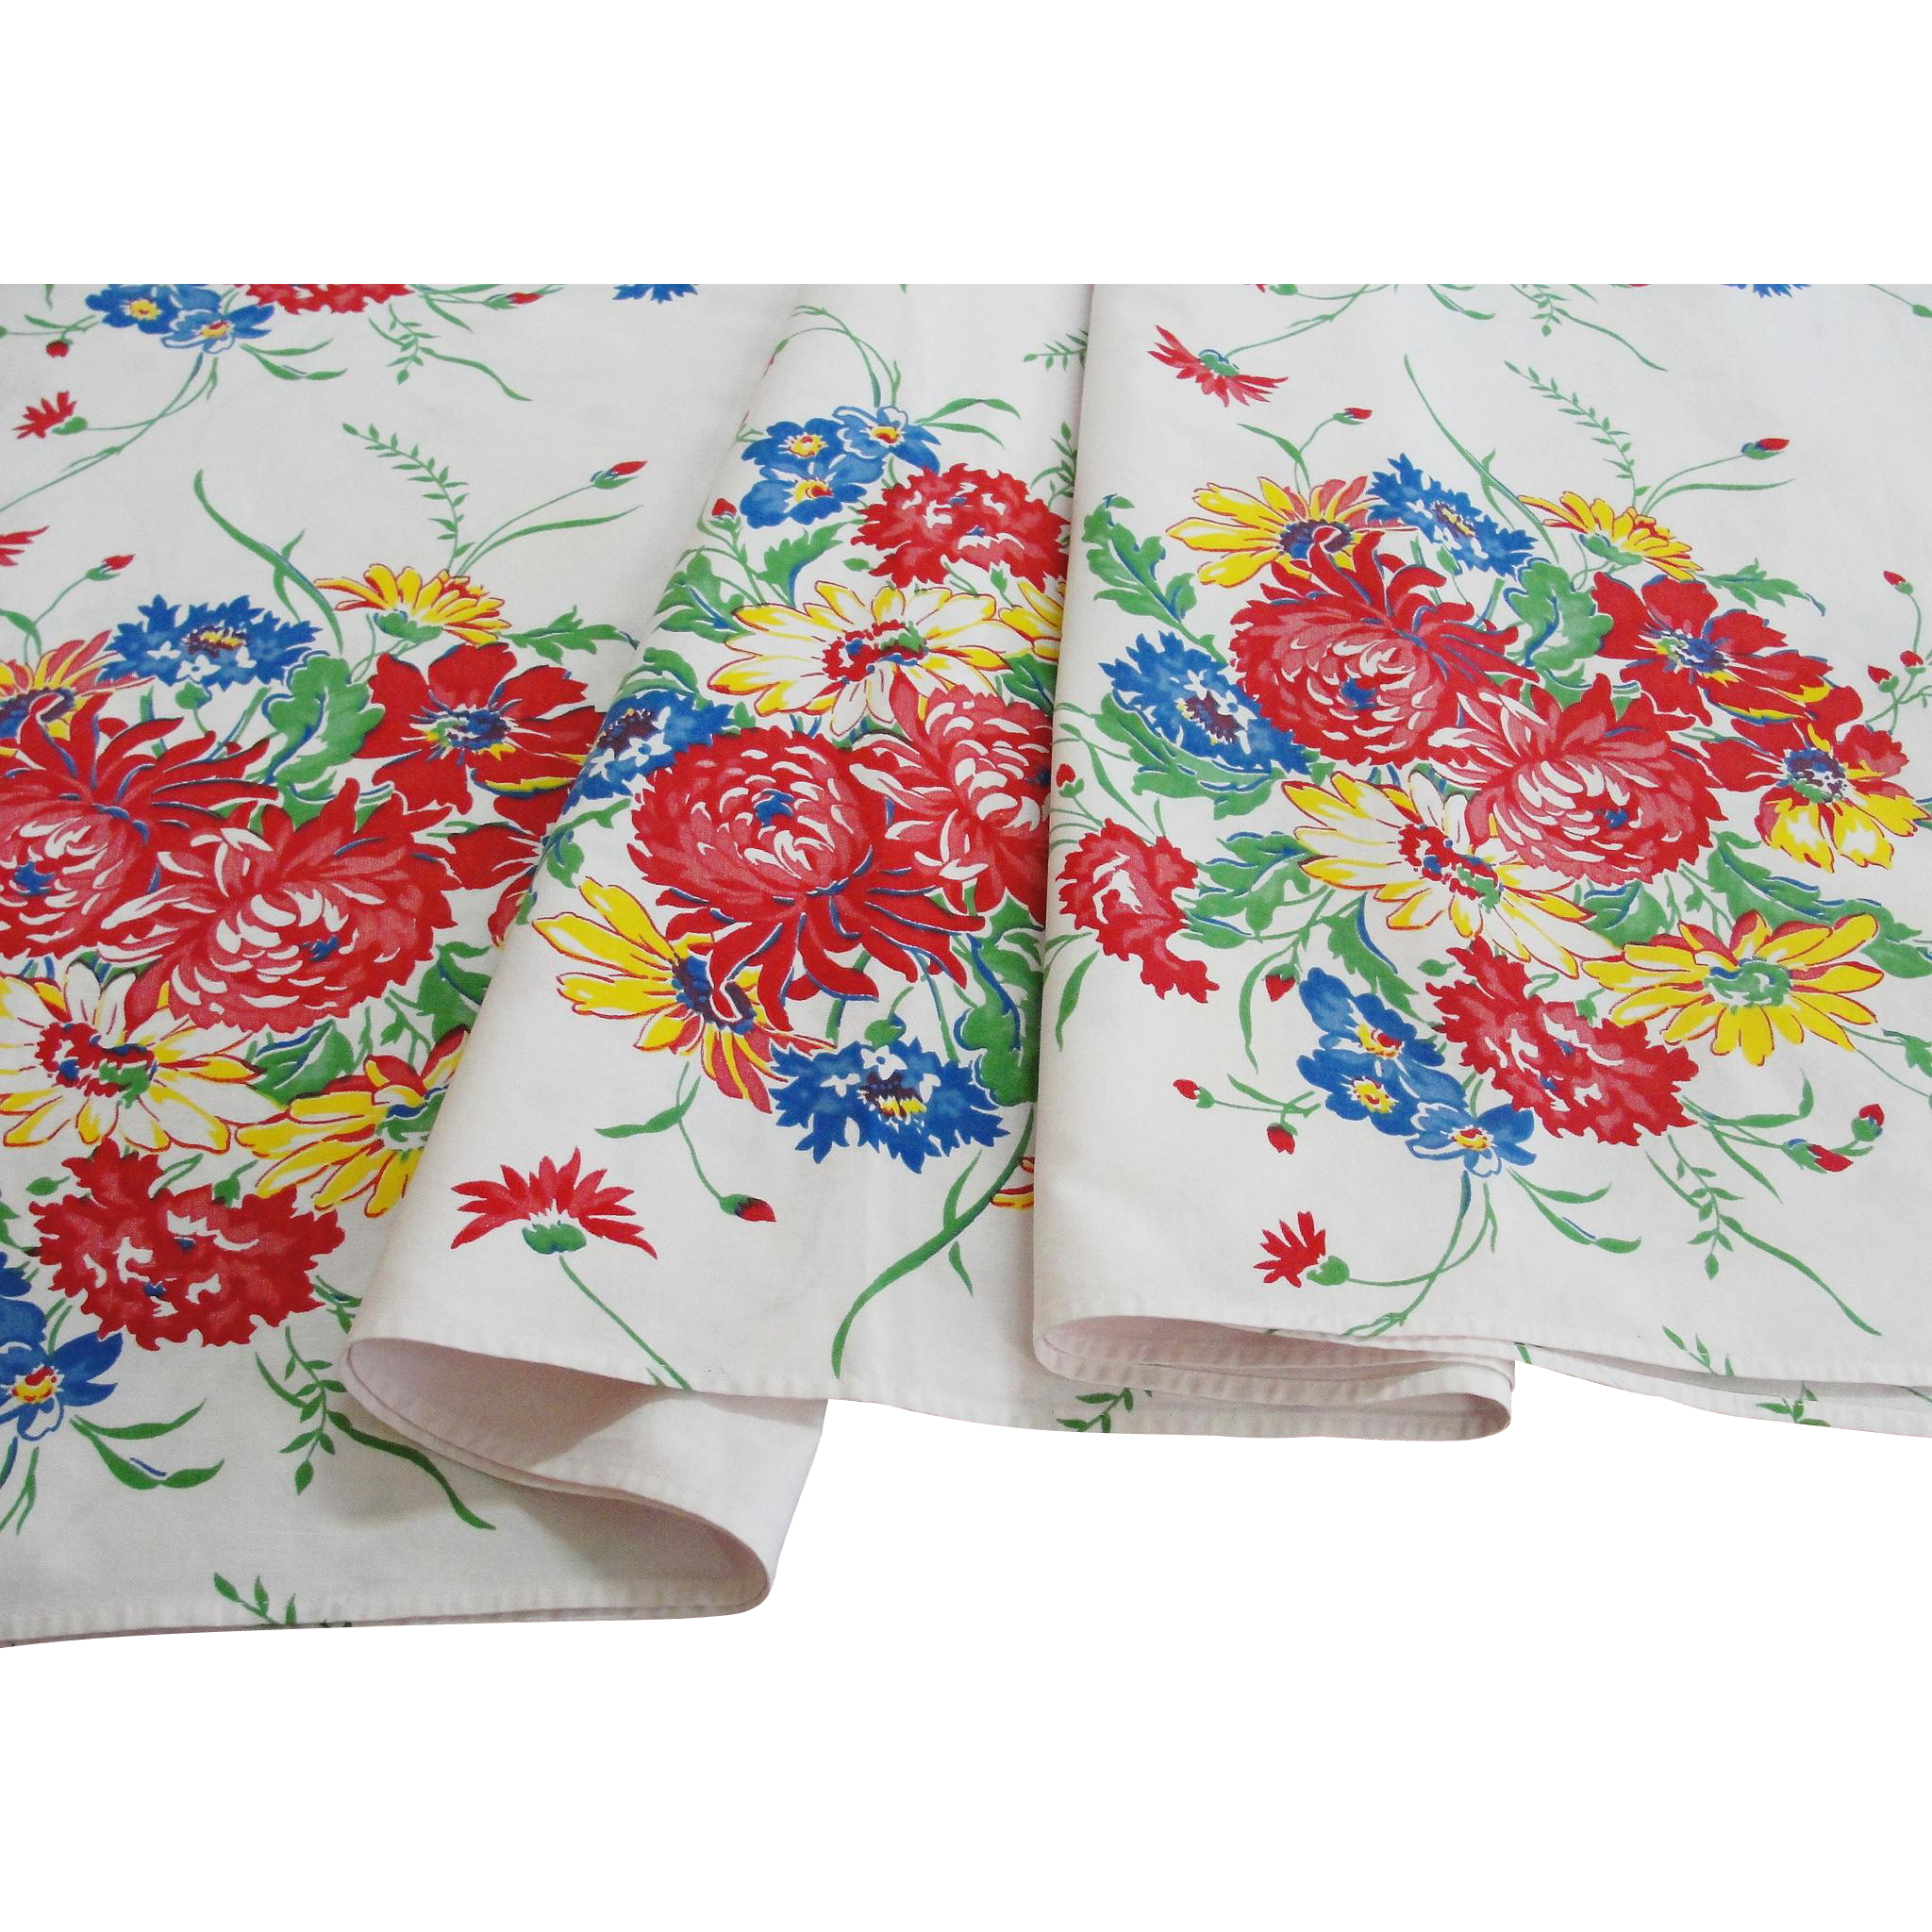 Vintage Floral Printed Cotton Tablecloth 66 x 54